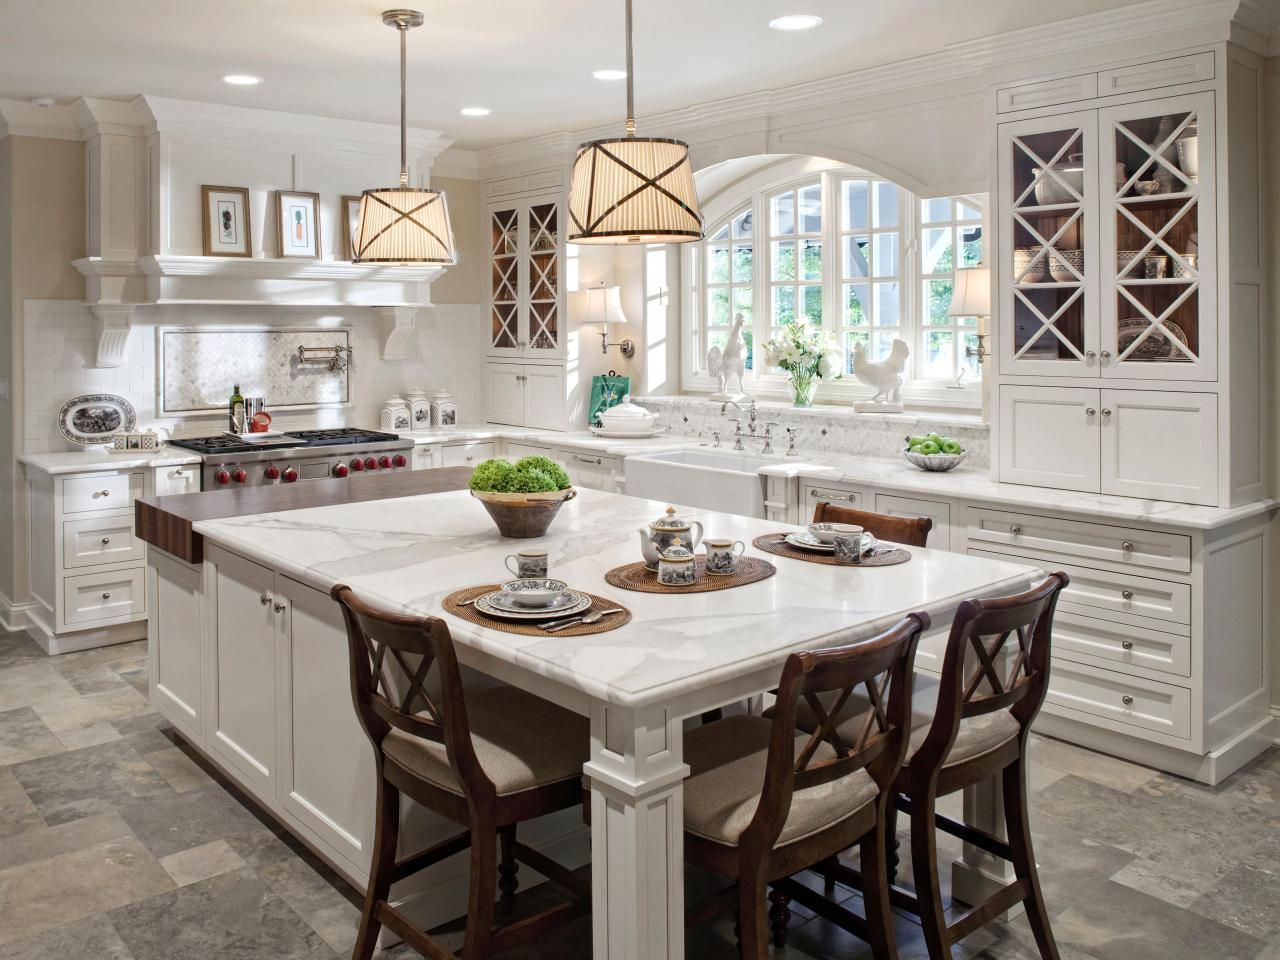 Large Kitchen Island Design Classy These 20 Stylish Kitchen Island Designs Will Have You Swooning Design Ideas